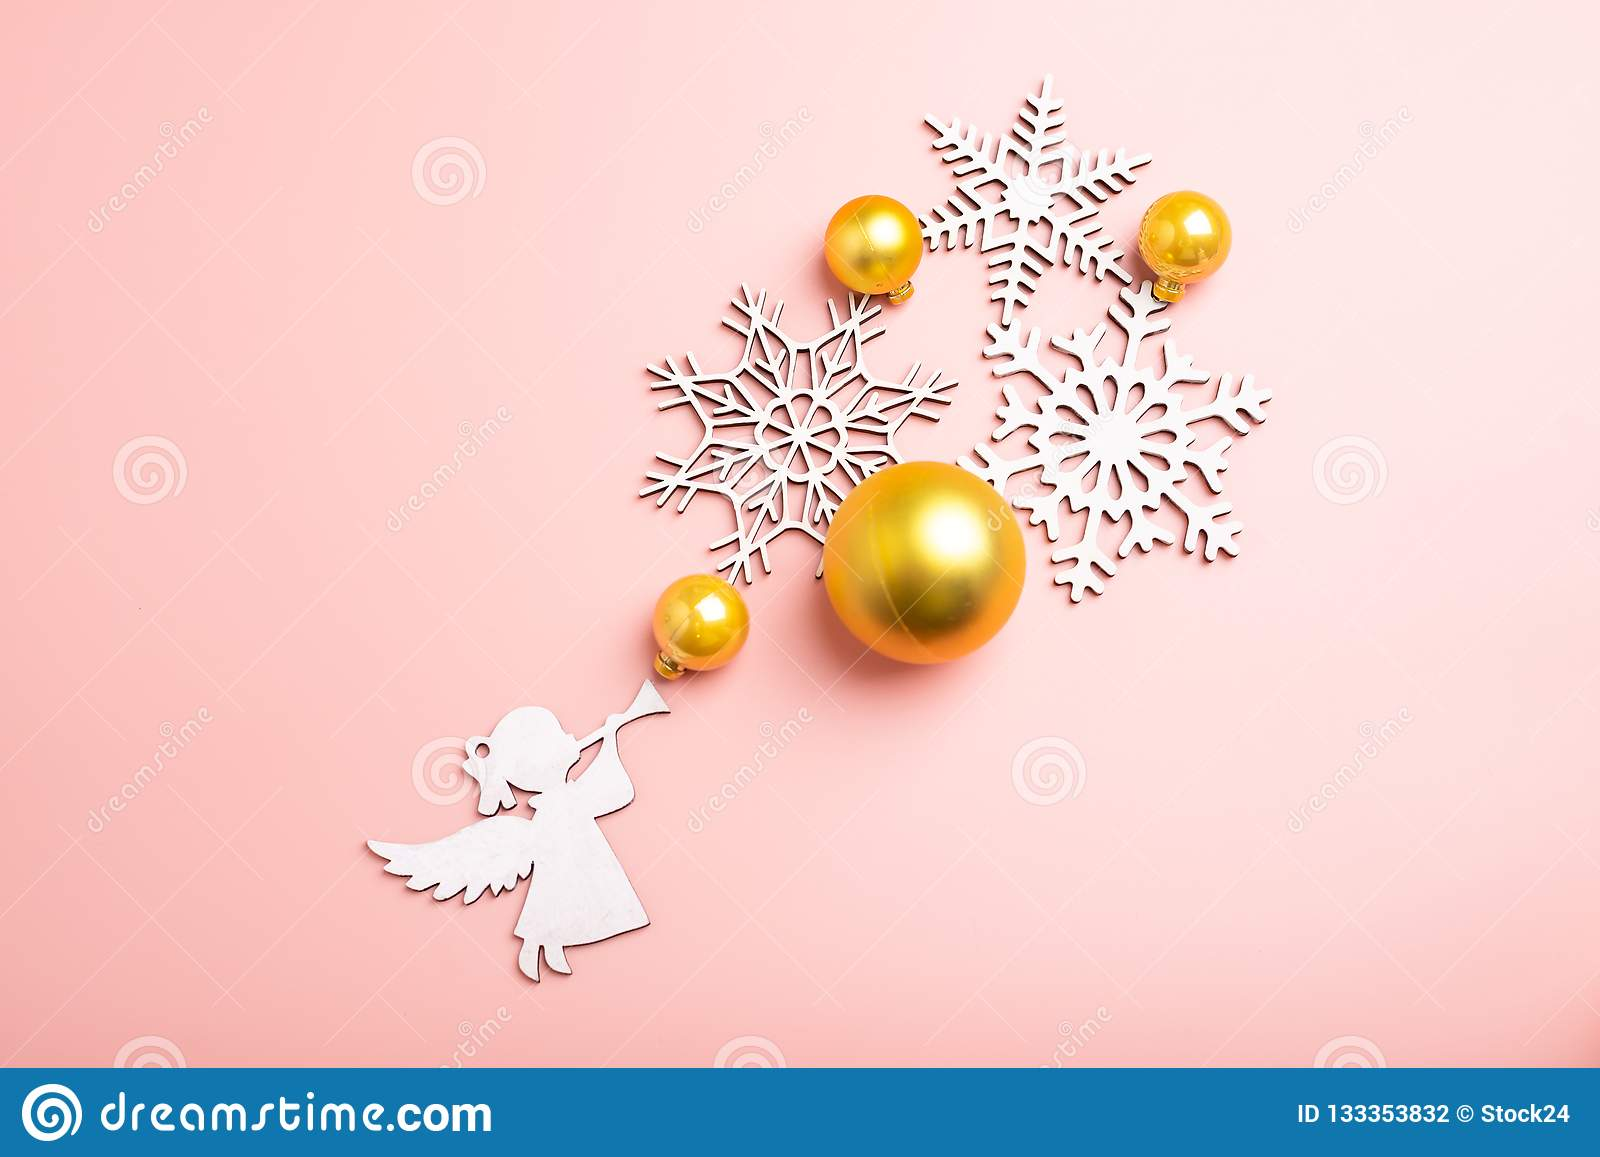 white christmas snowflakes pink background christmas wallpaper flat lay top view angel white christmas snowflakes decoration 133353832